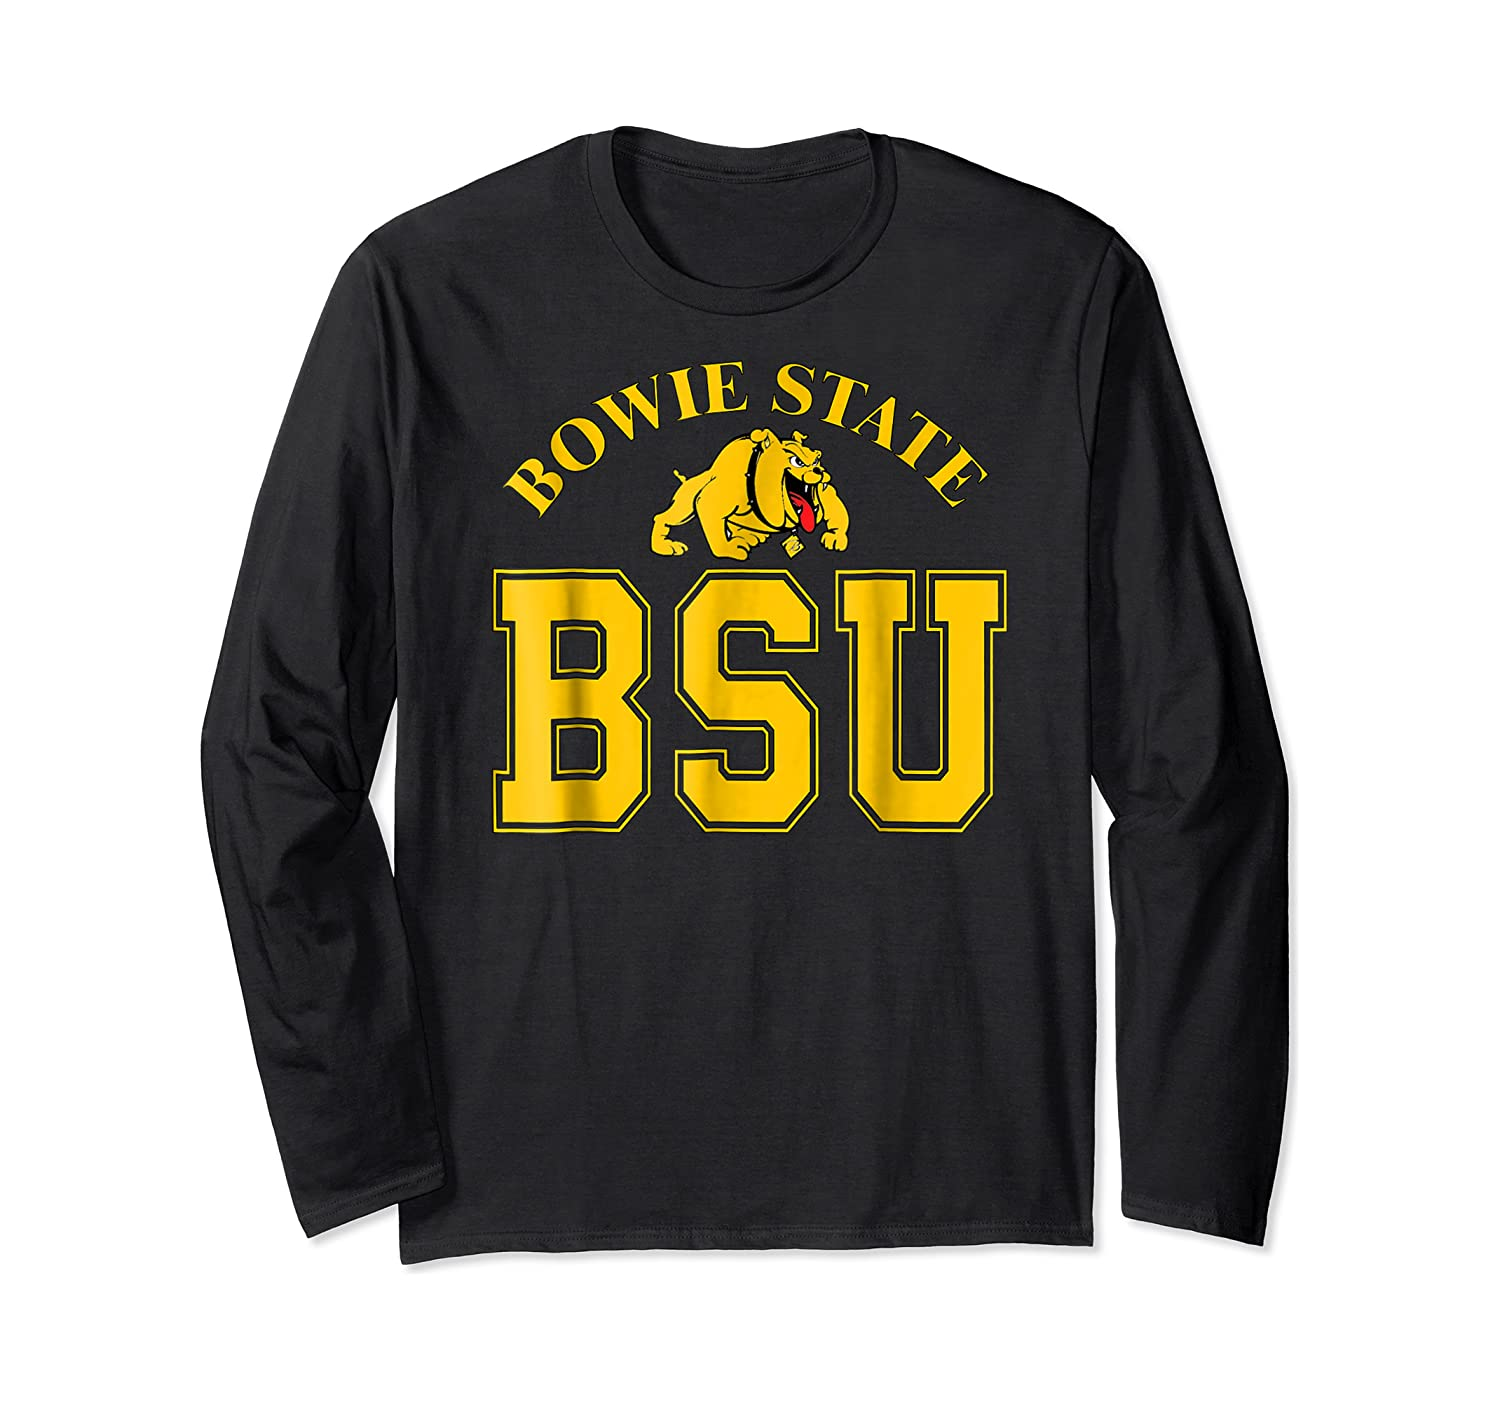 Bowie State 1865 University Apparel Shirts Long Sleeve T-shirt